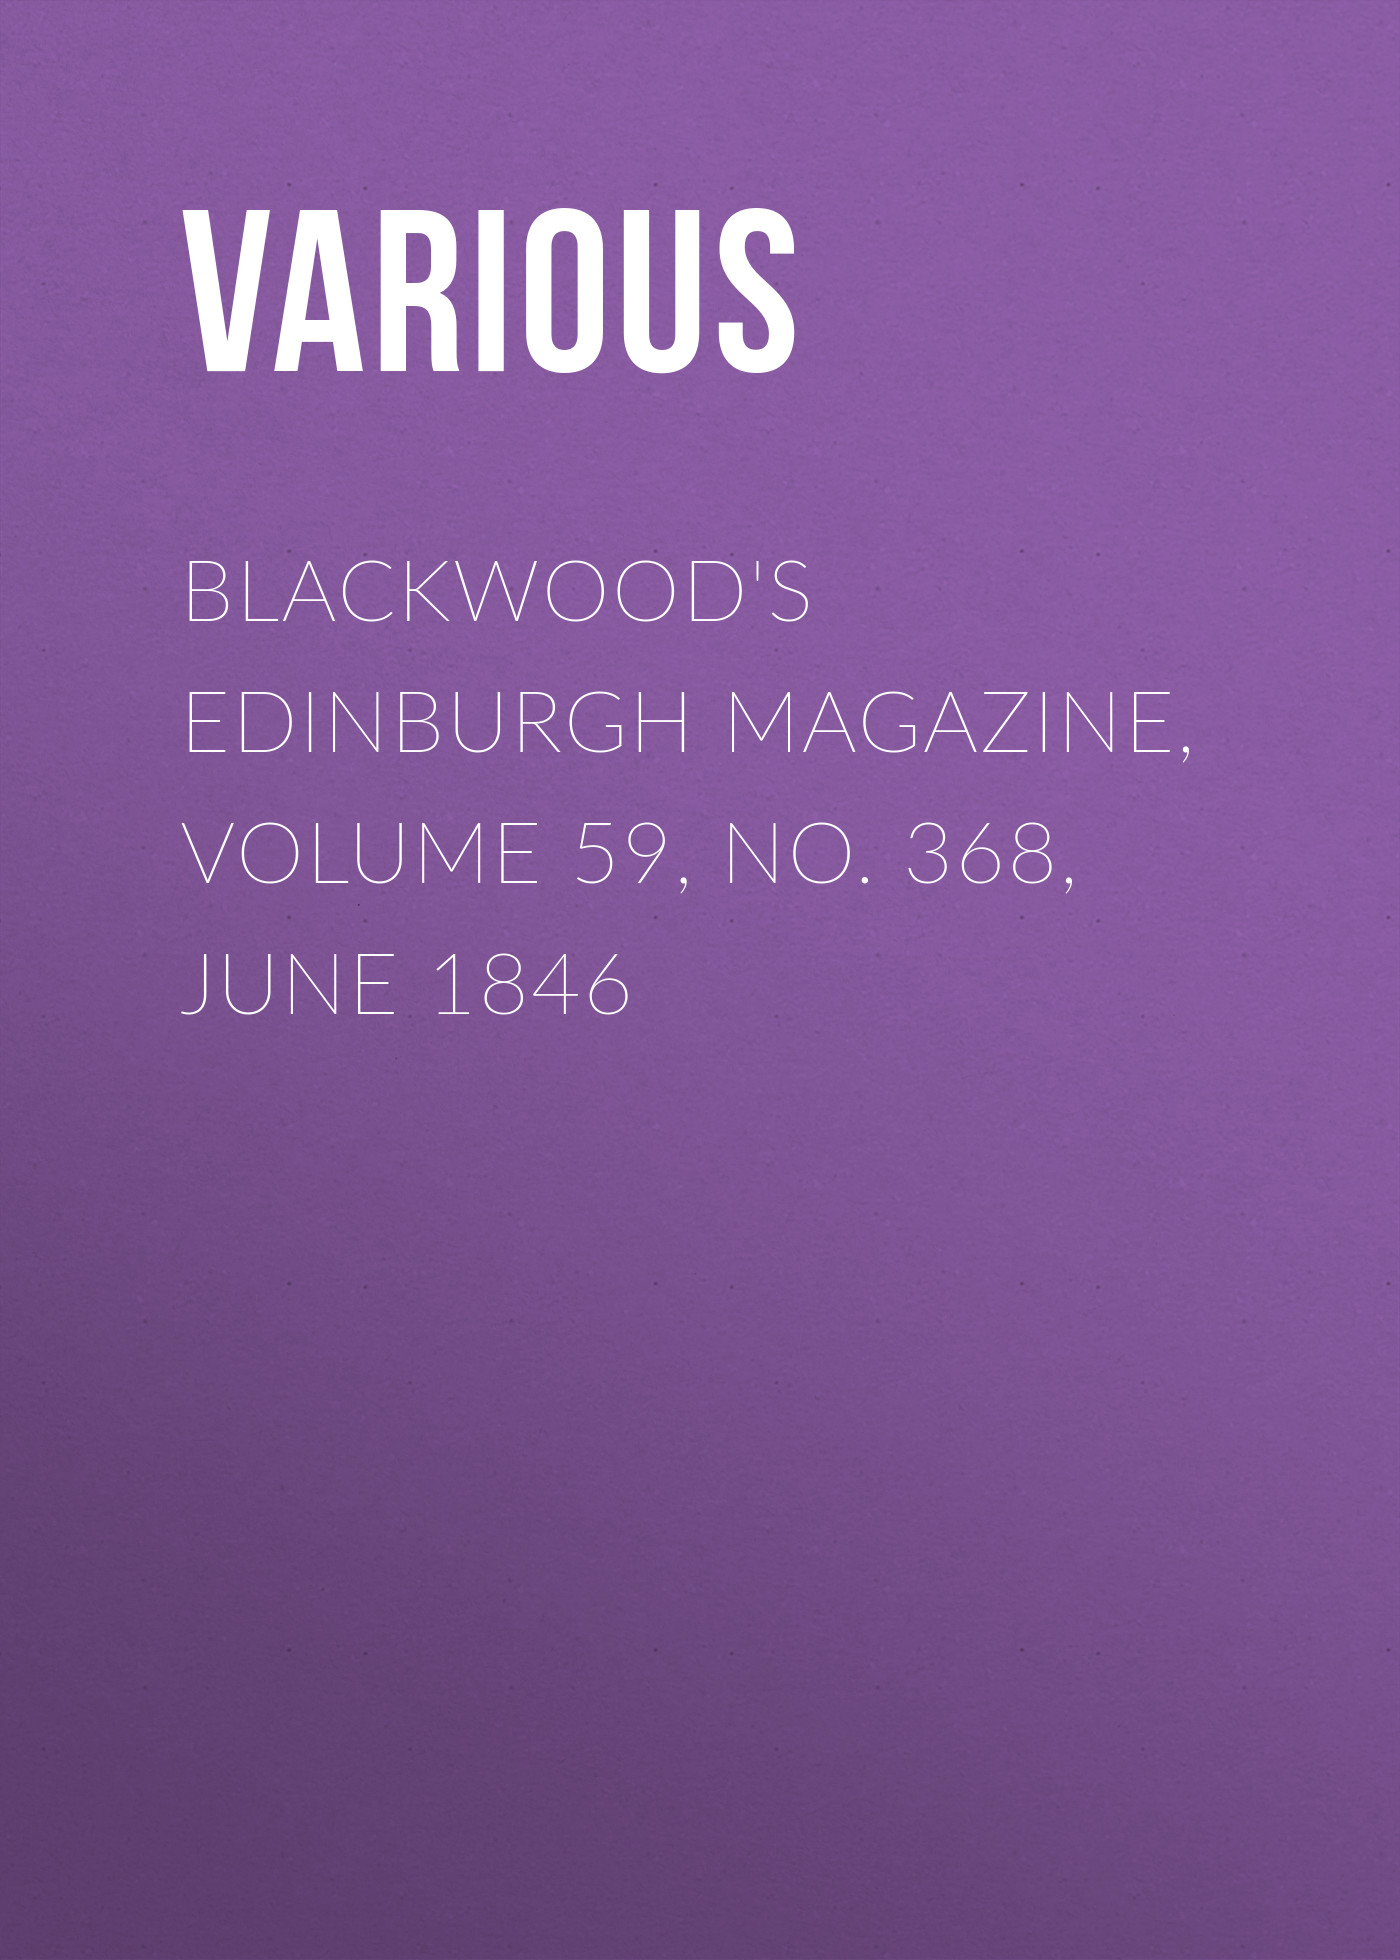 лучшая цена Various Blackwood's Edinburgh Magazine, Volume 59, No. 368, June 1846